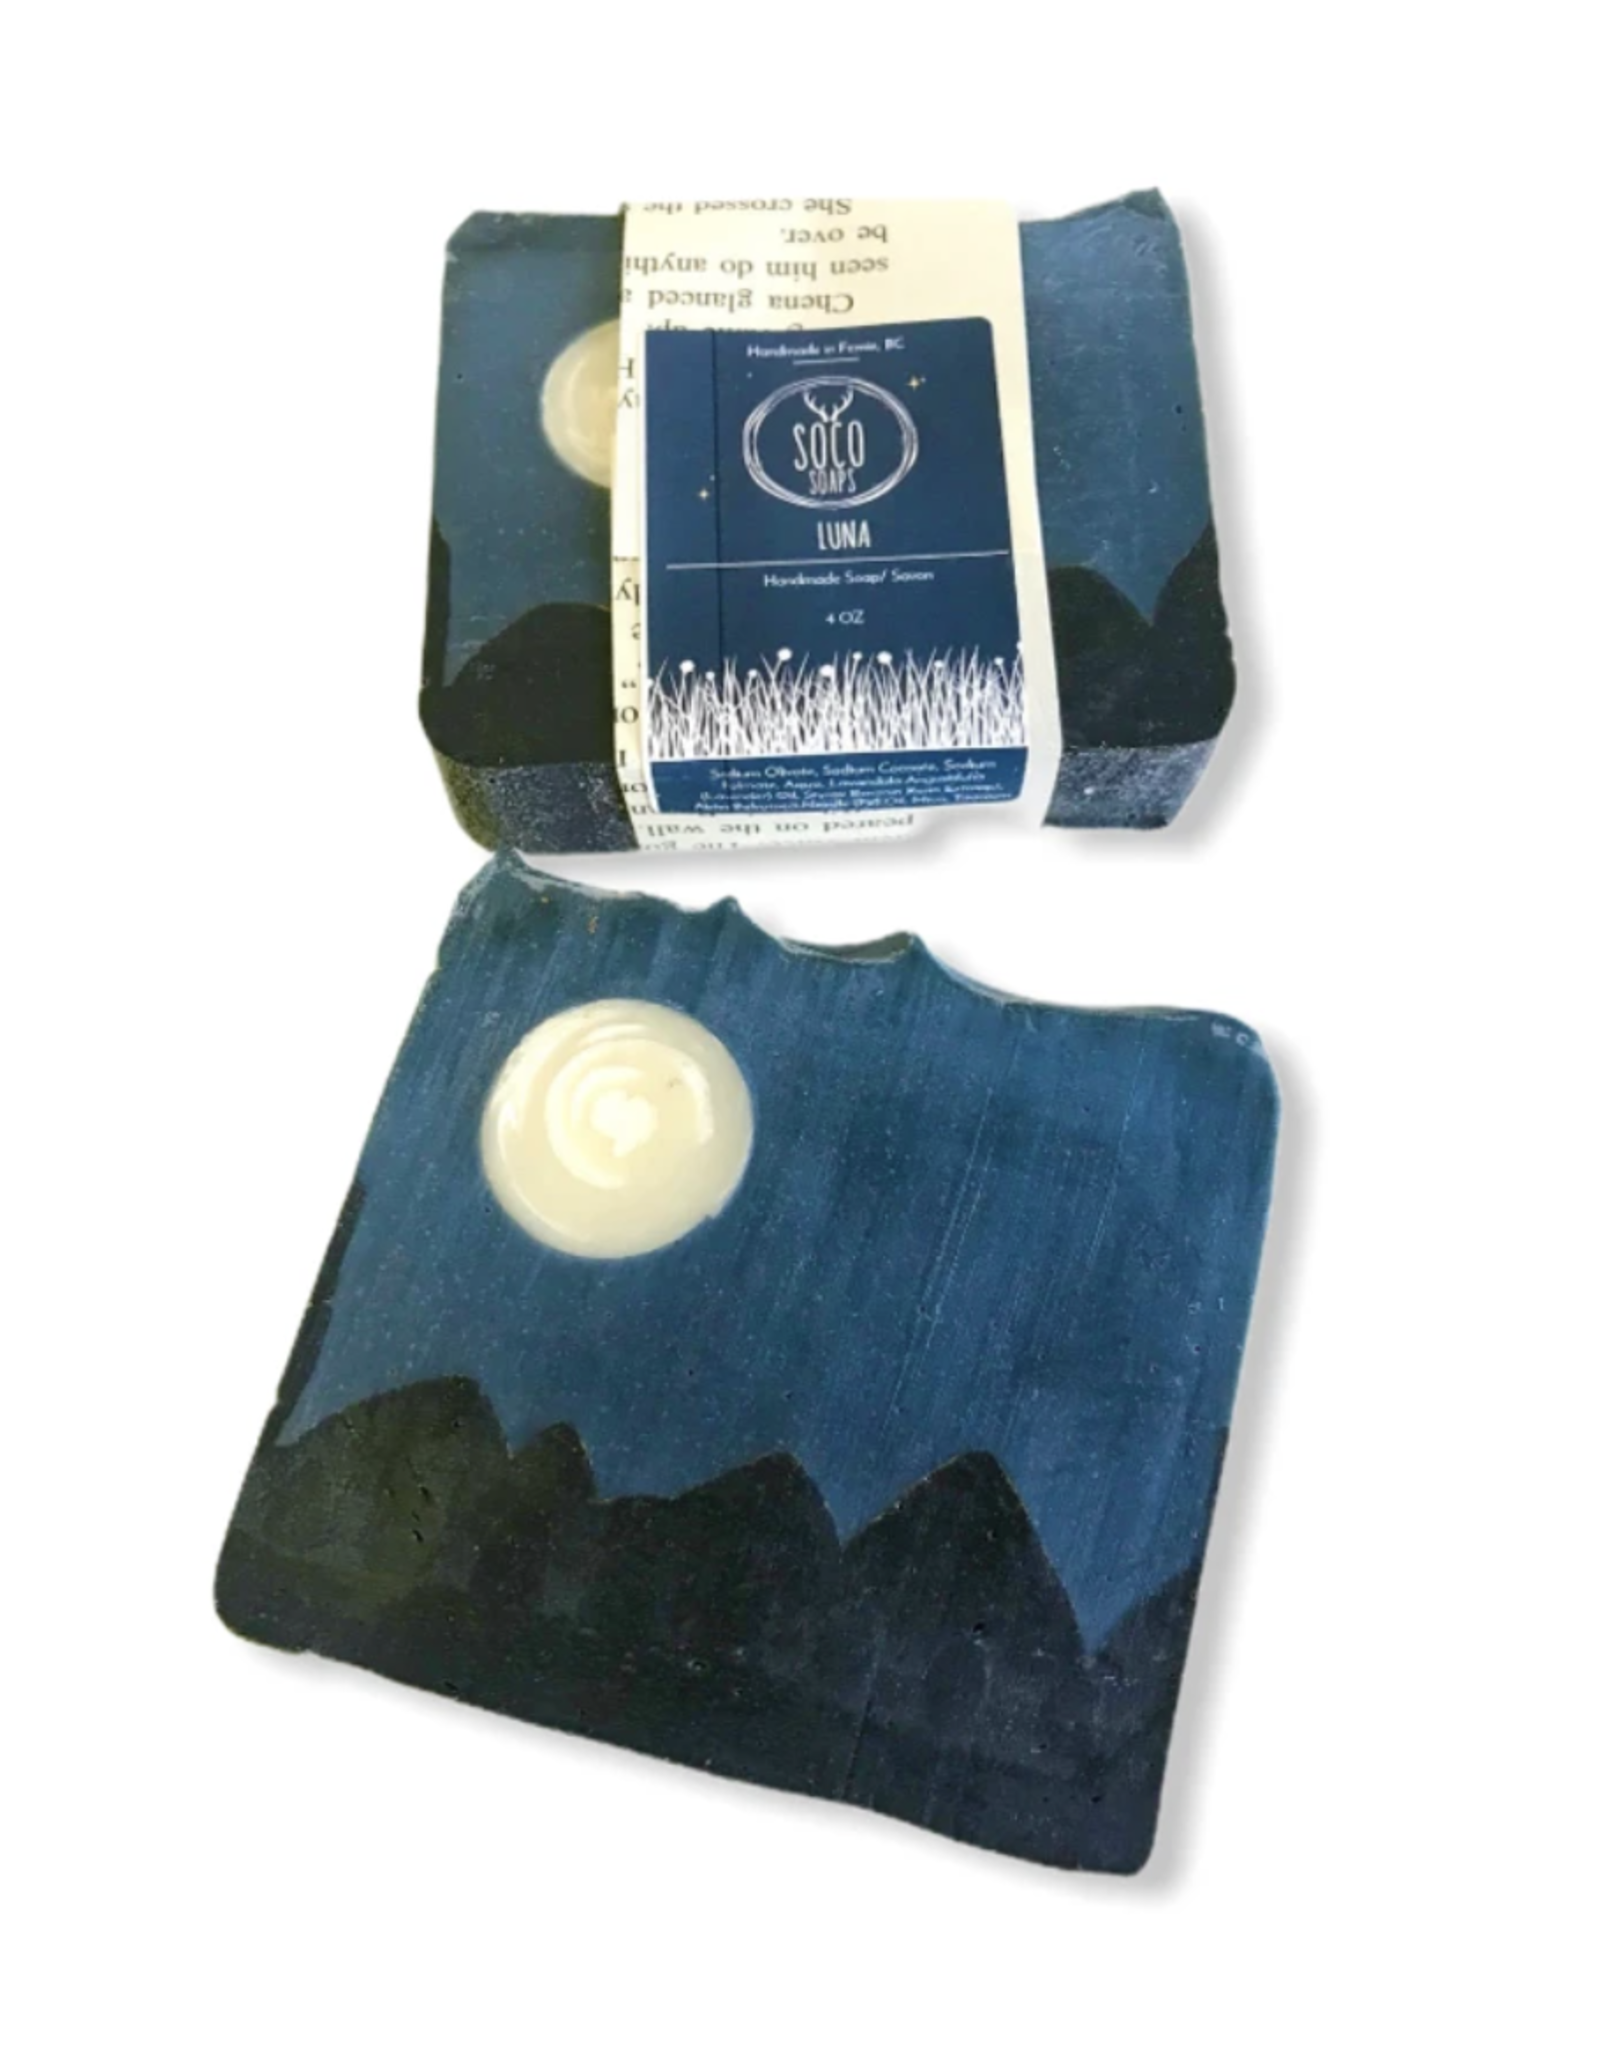 Luna Soap by Soco Soaps